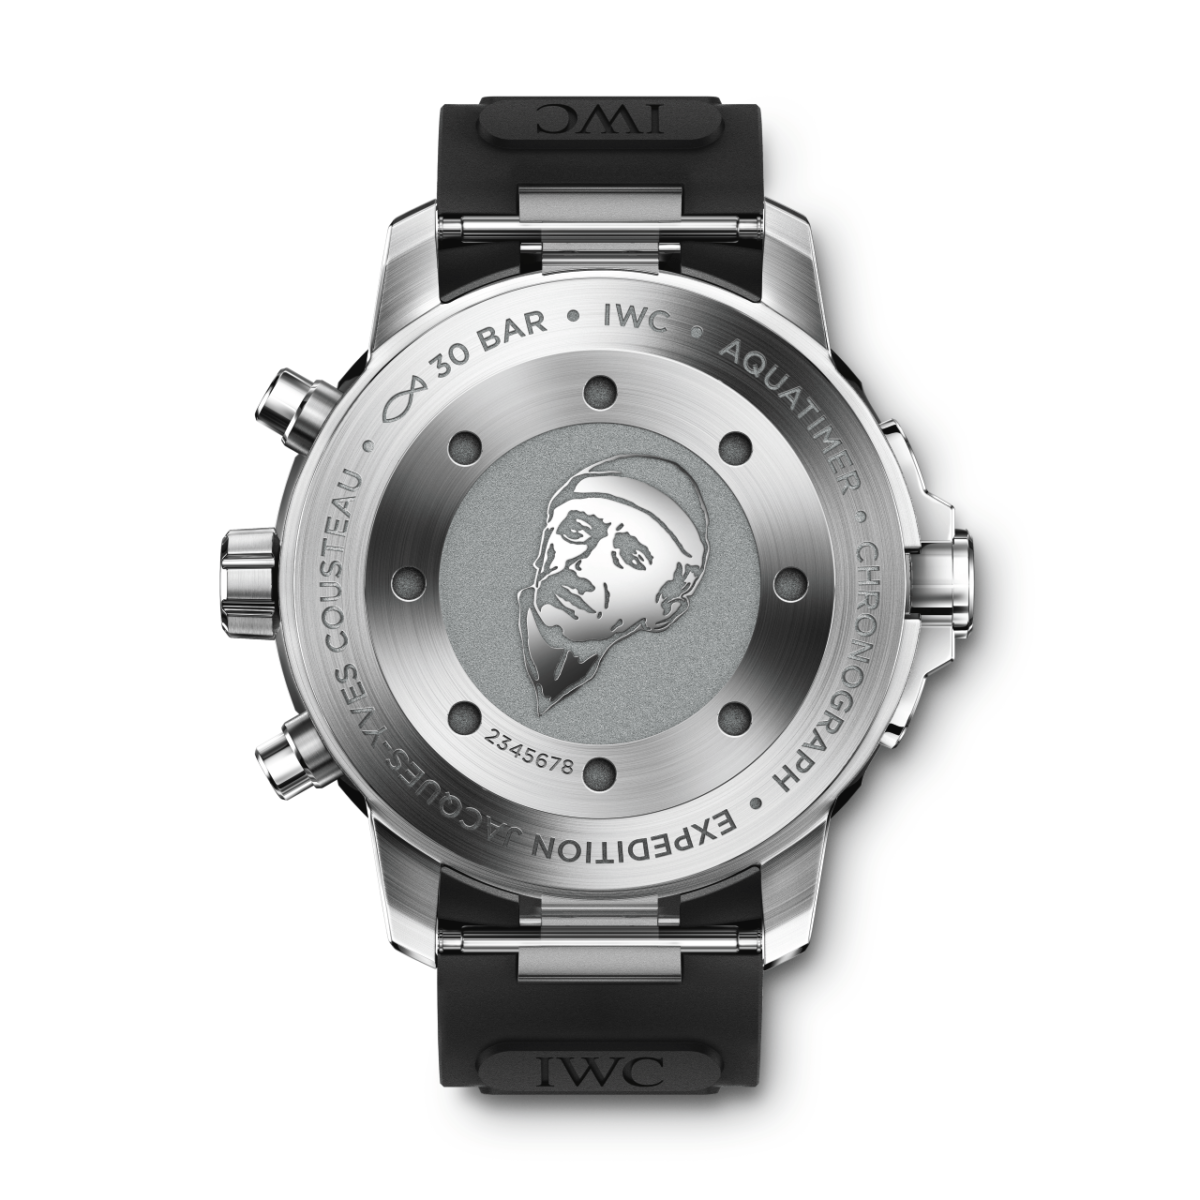 IW376805 Aquatimer Chronograph Edition Expedition Jaques-Yves Cousteau_627147